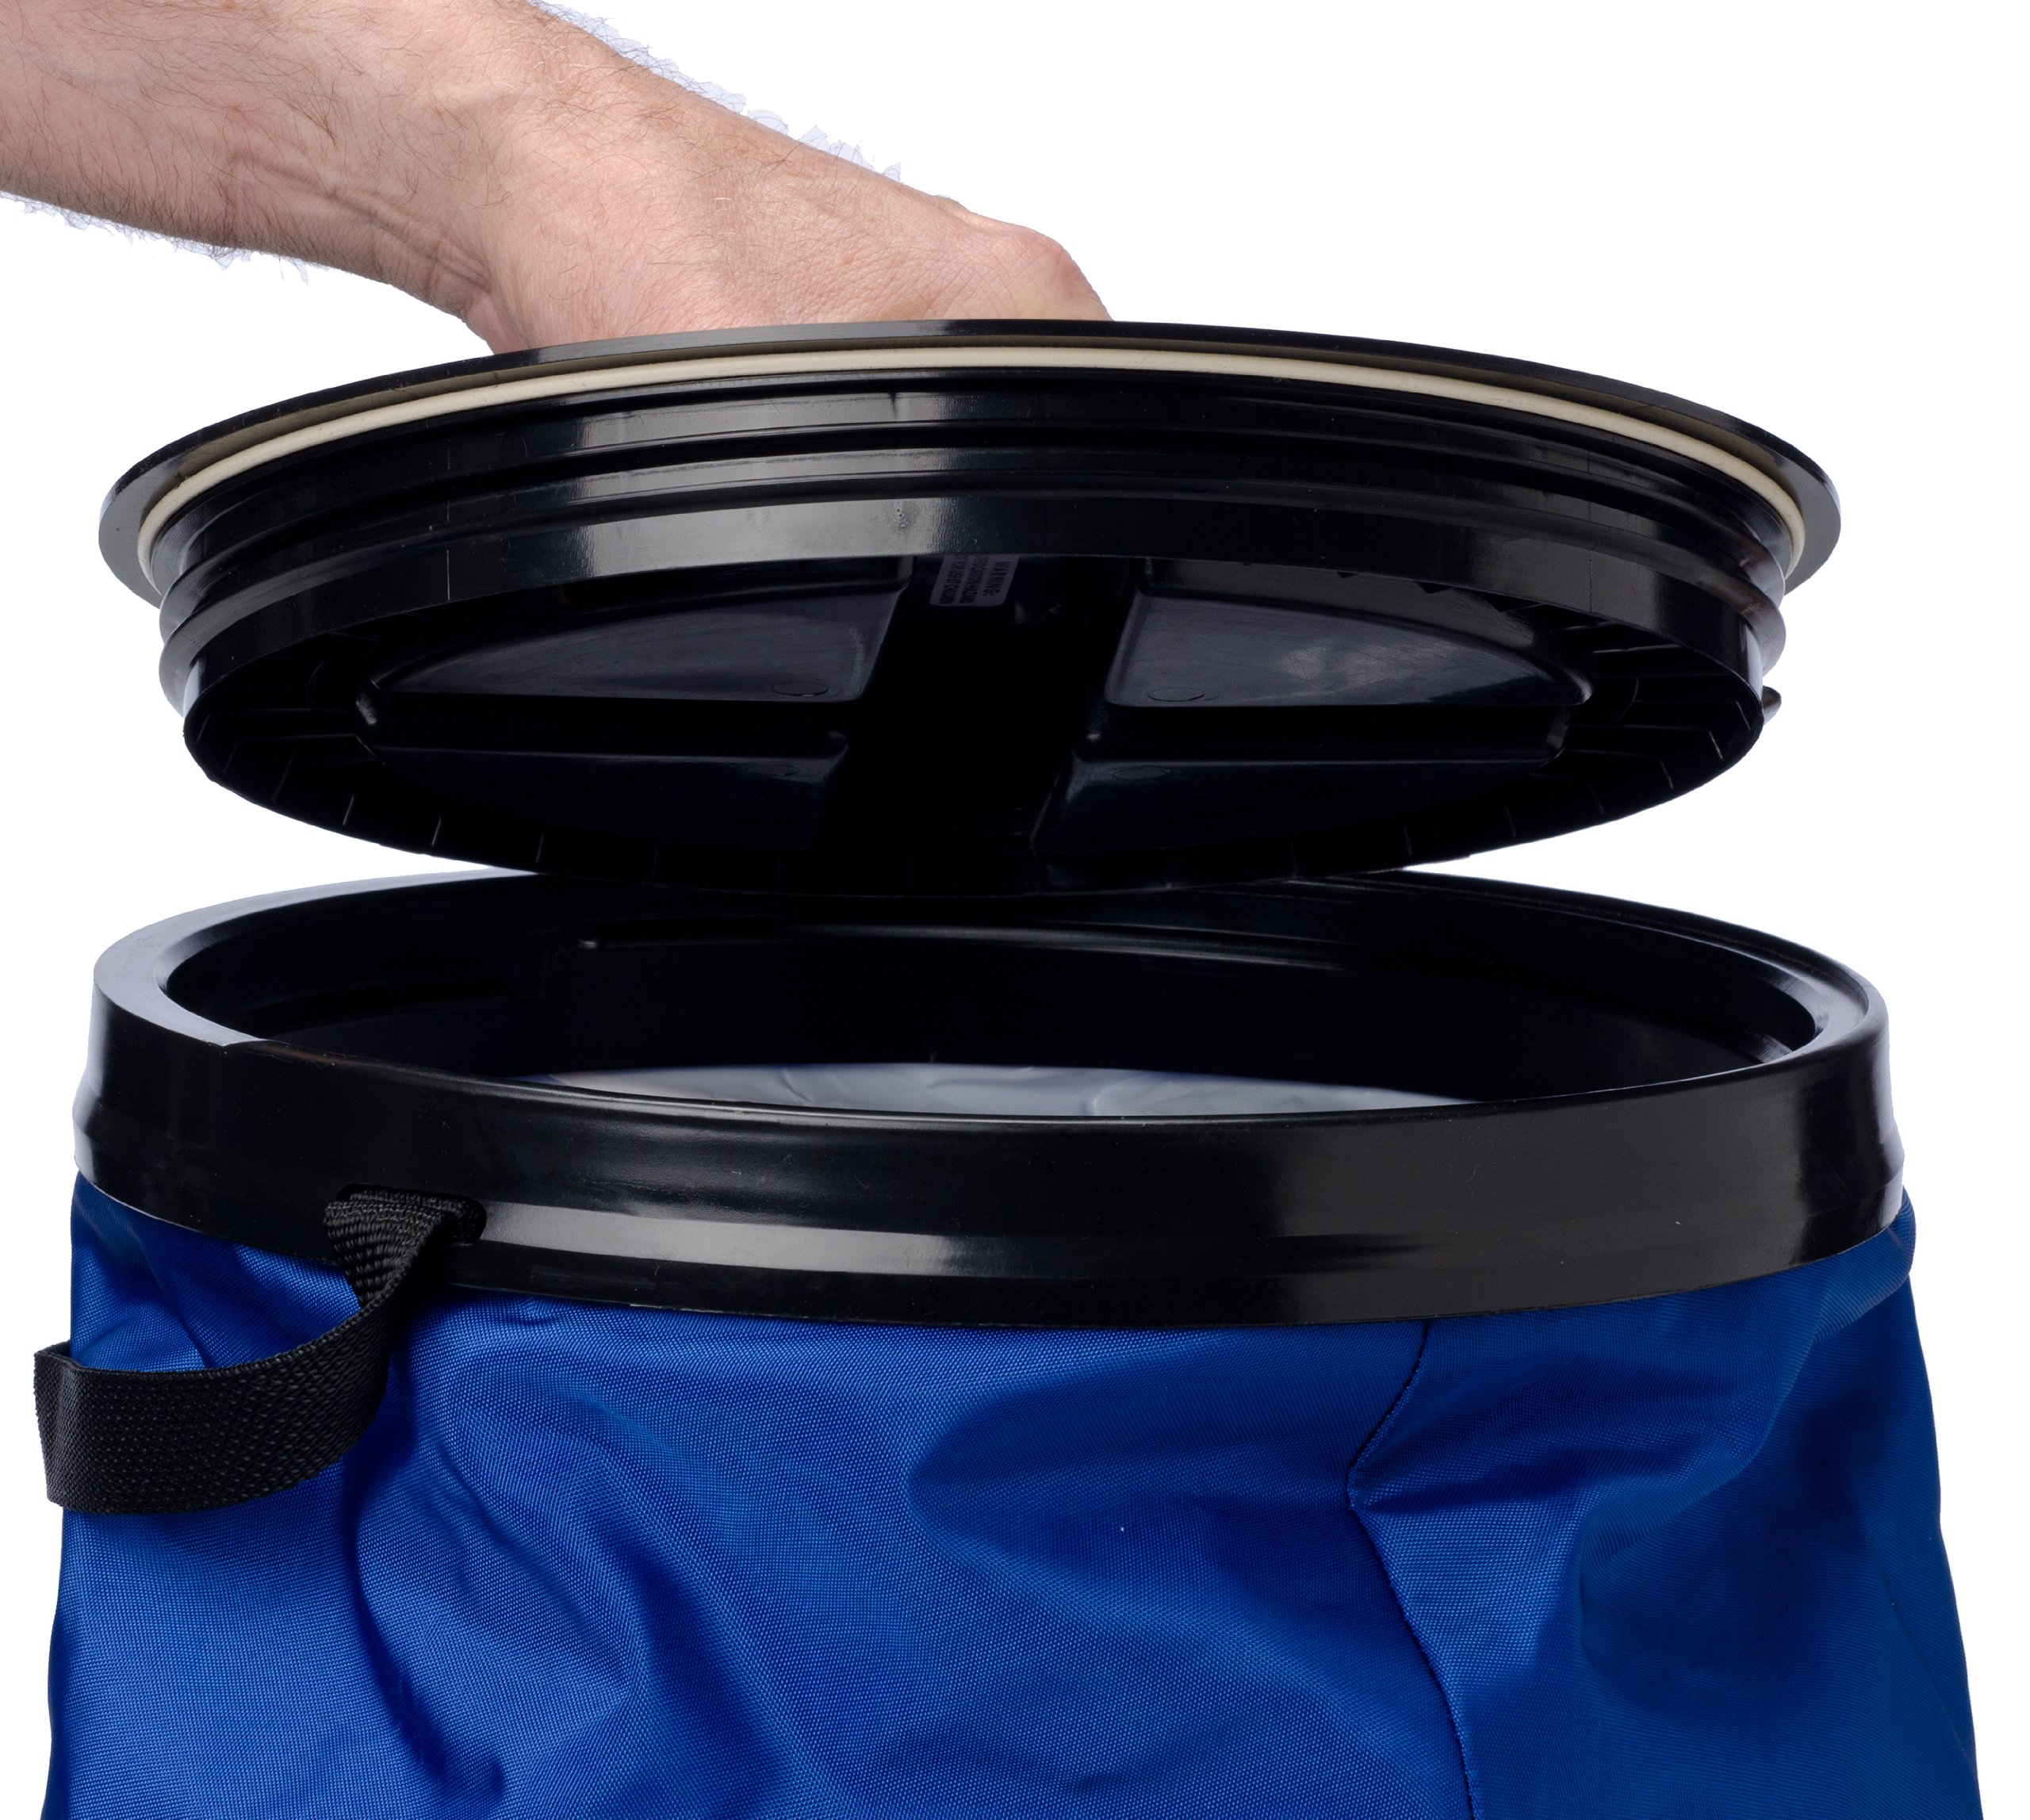 Vittles Vault SoftStore Collapsible, Airtight Pet Food Container 50 Pound Capacity, Blue by Vittles Vault (Image #4)